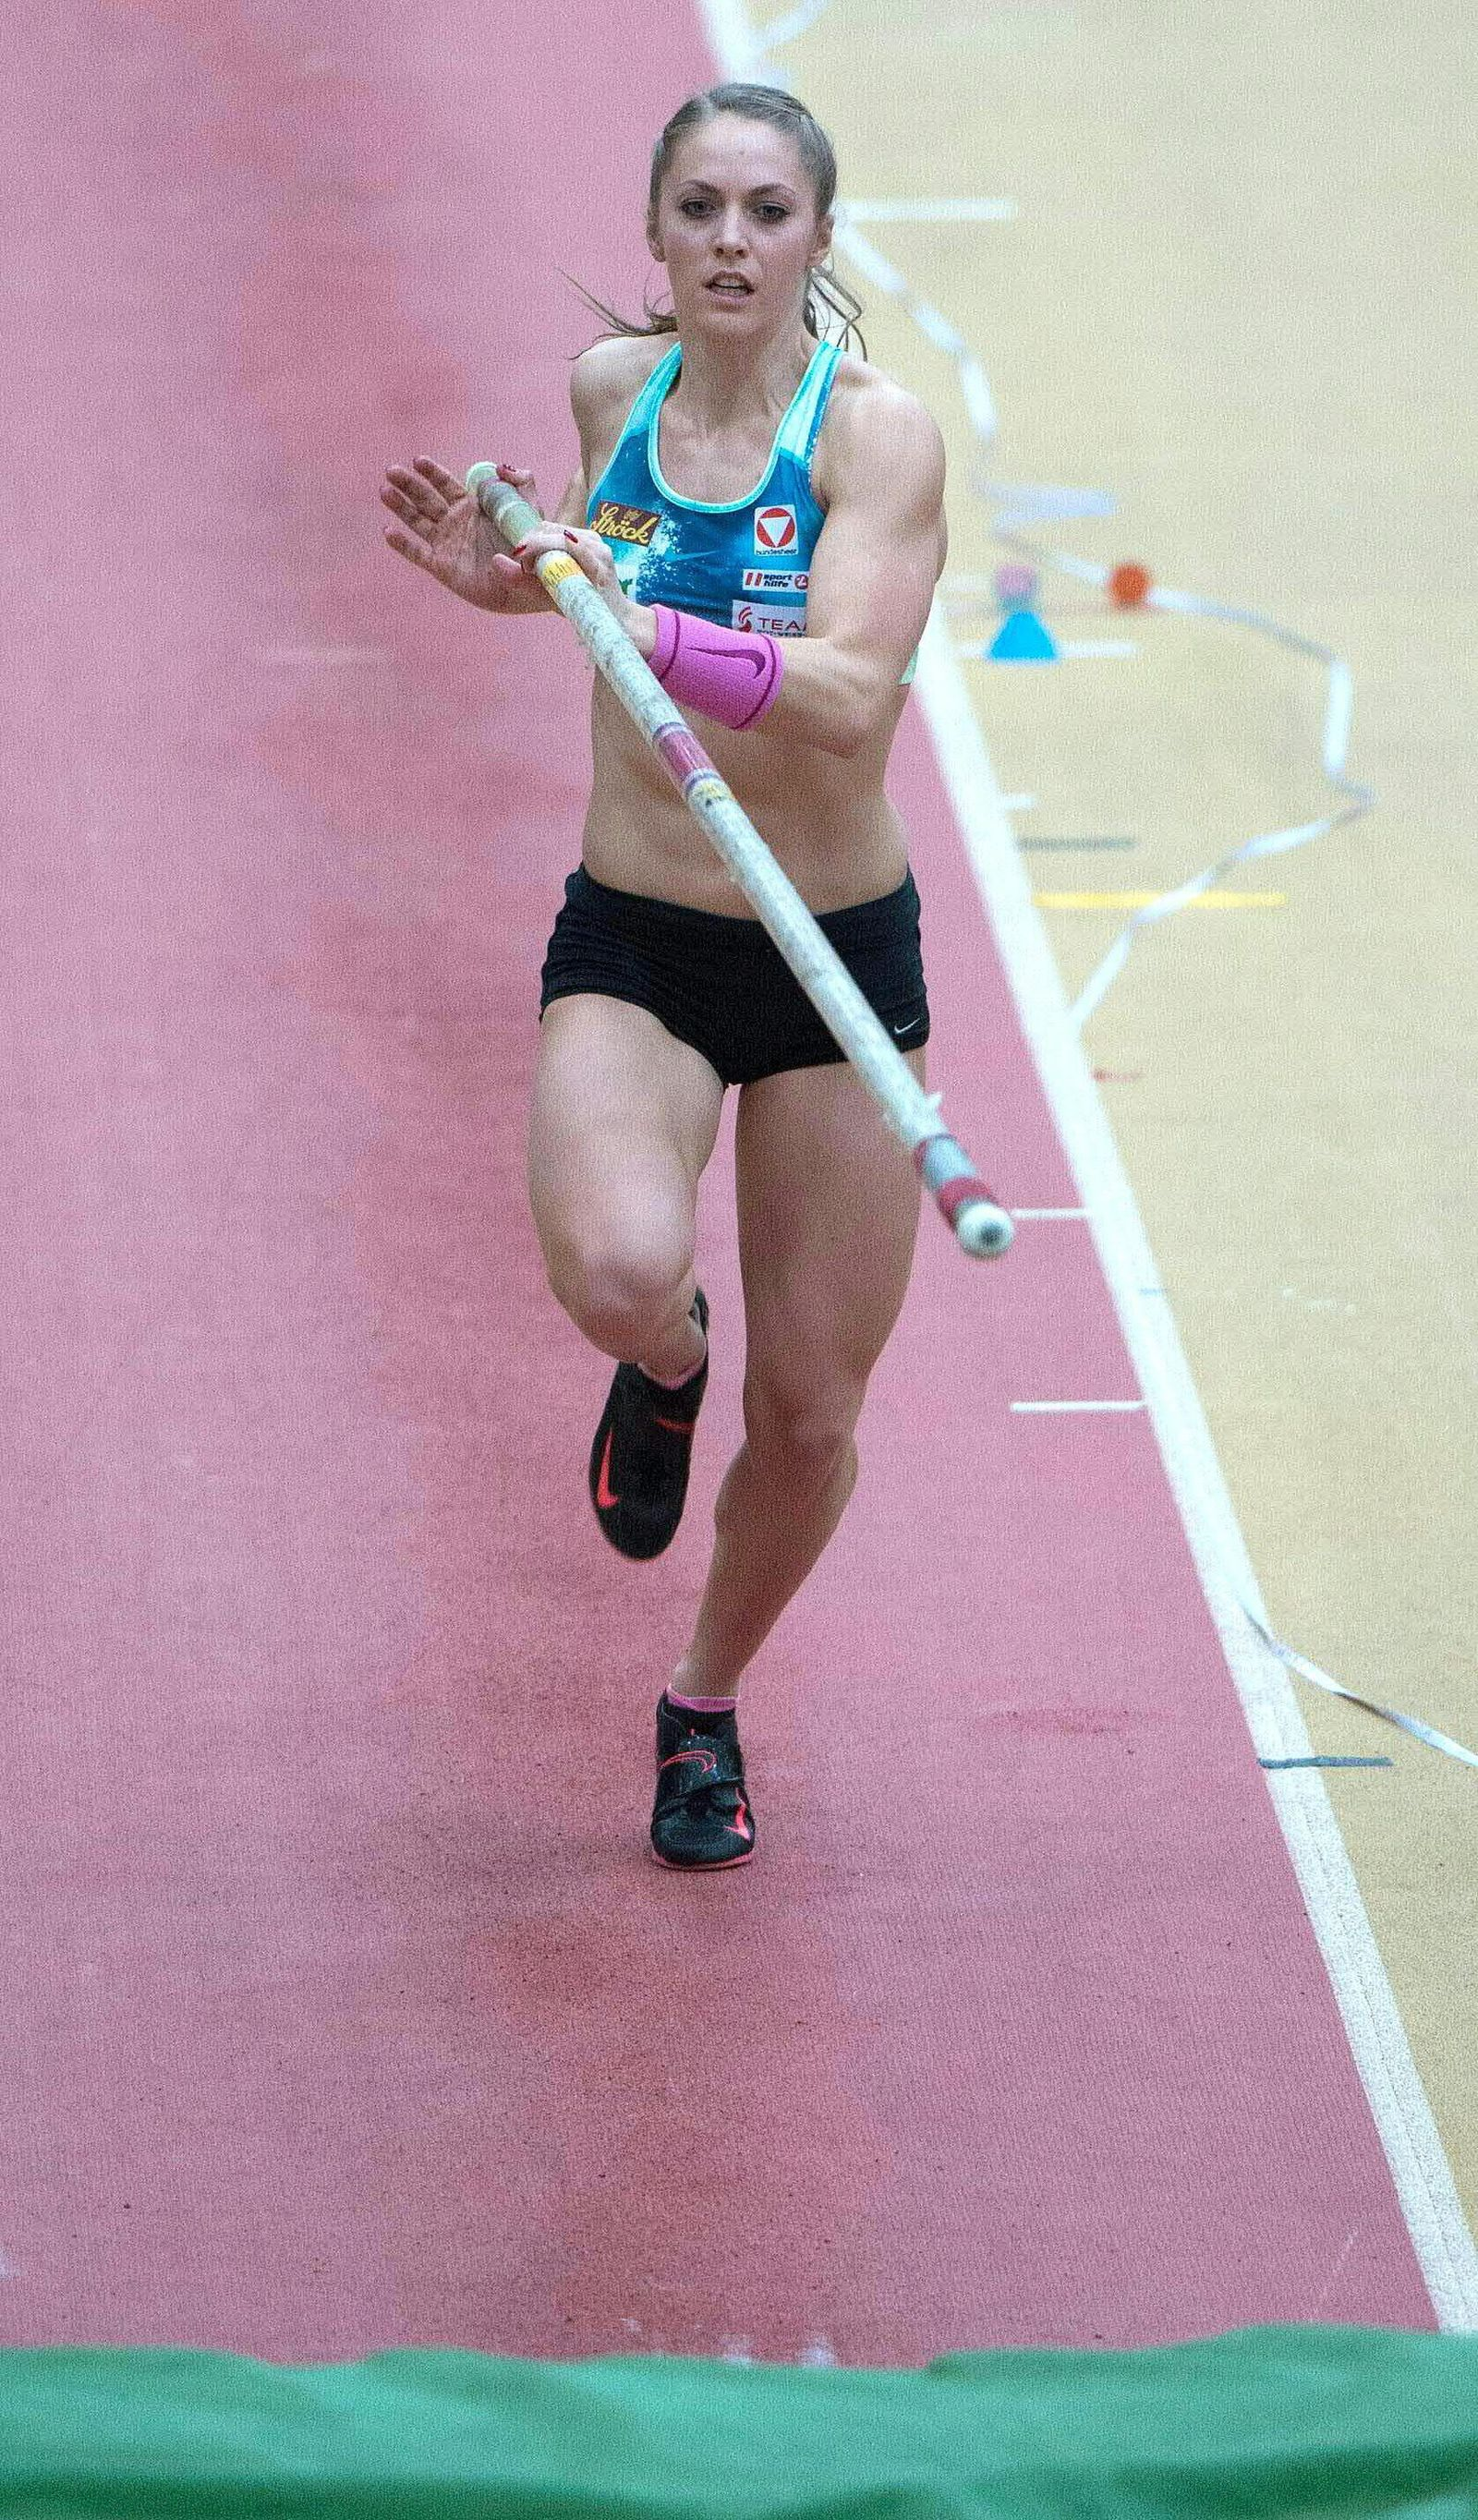 Austrian pole vaulter fractures spine in training accident - Kira